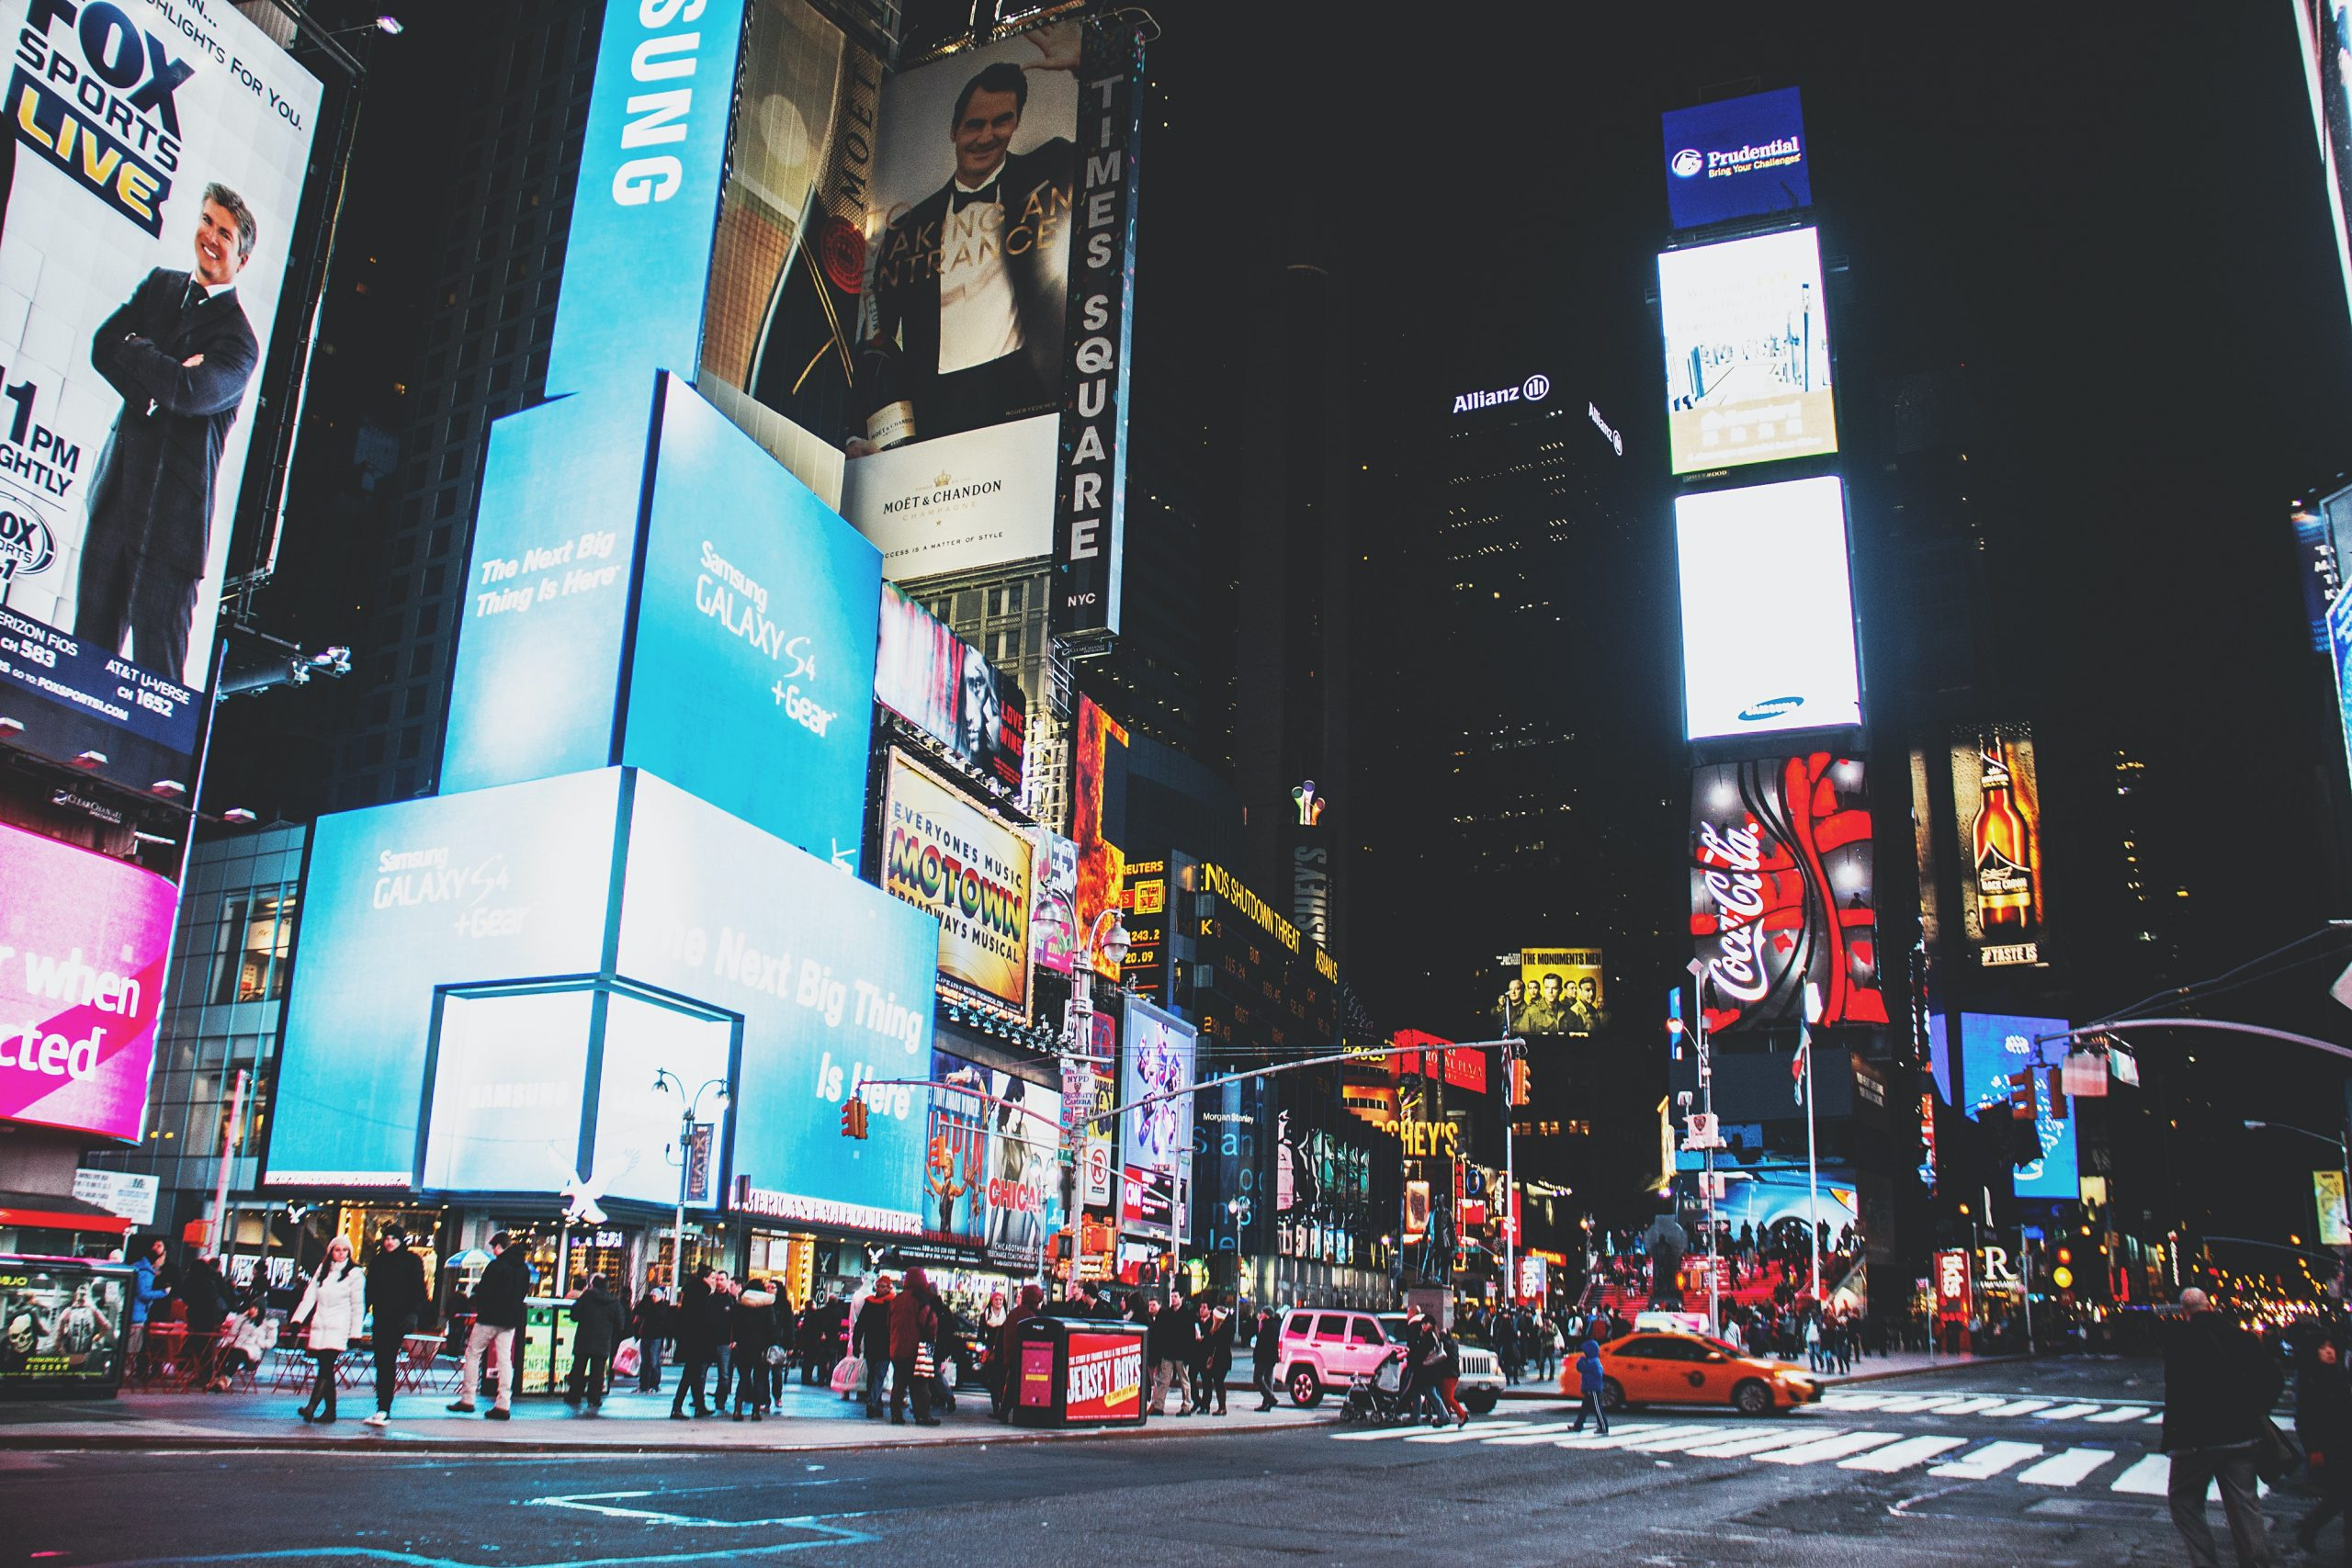 Outdoor Advertising Encourage Shoppers to Search for Brands